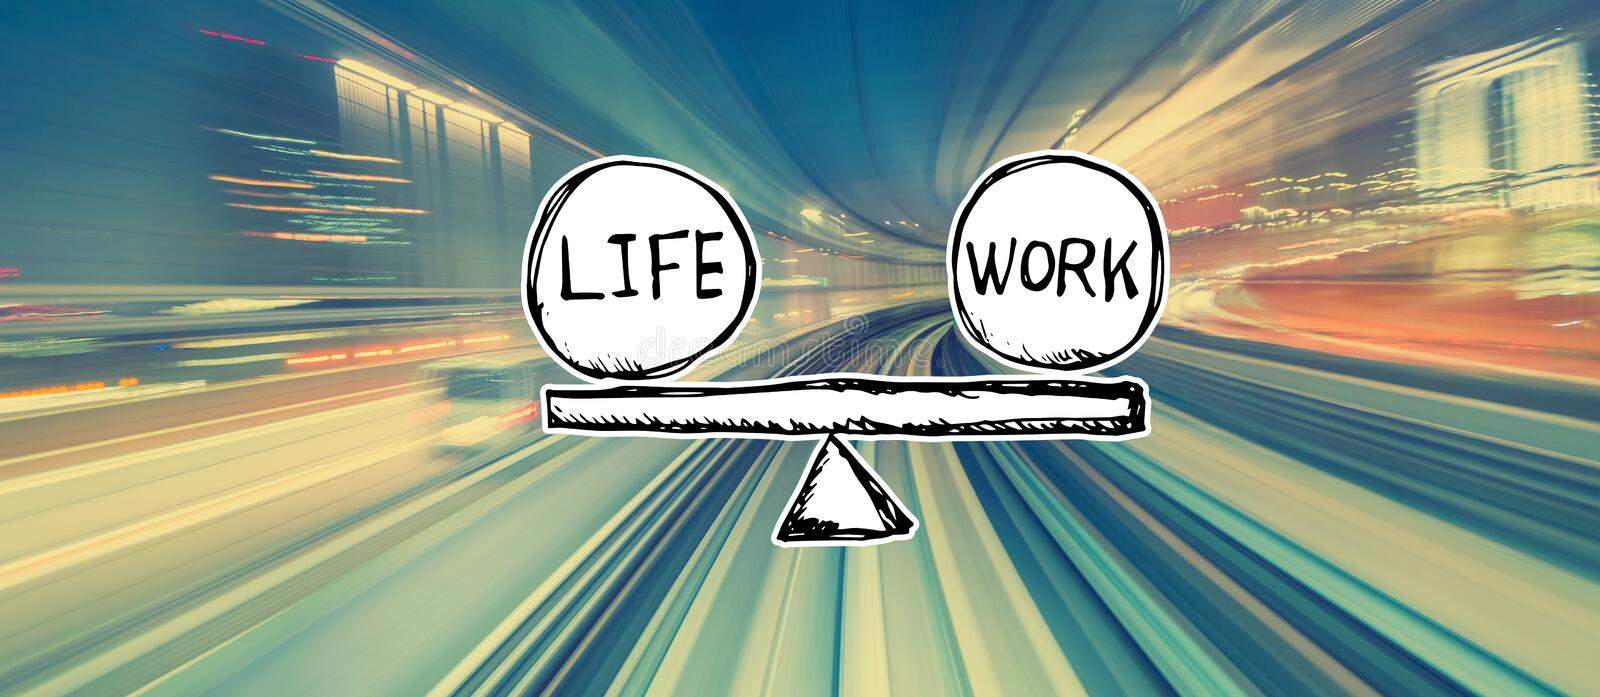 Life and work balance with high speed motion blur stock photos